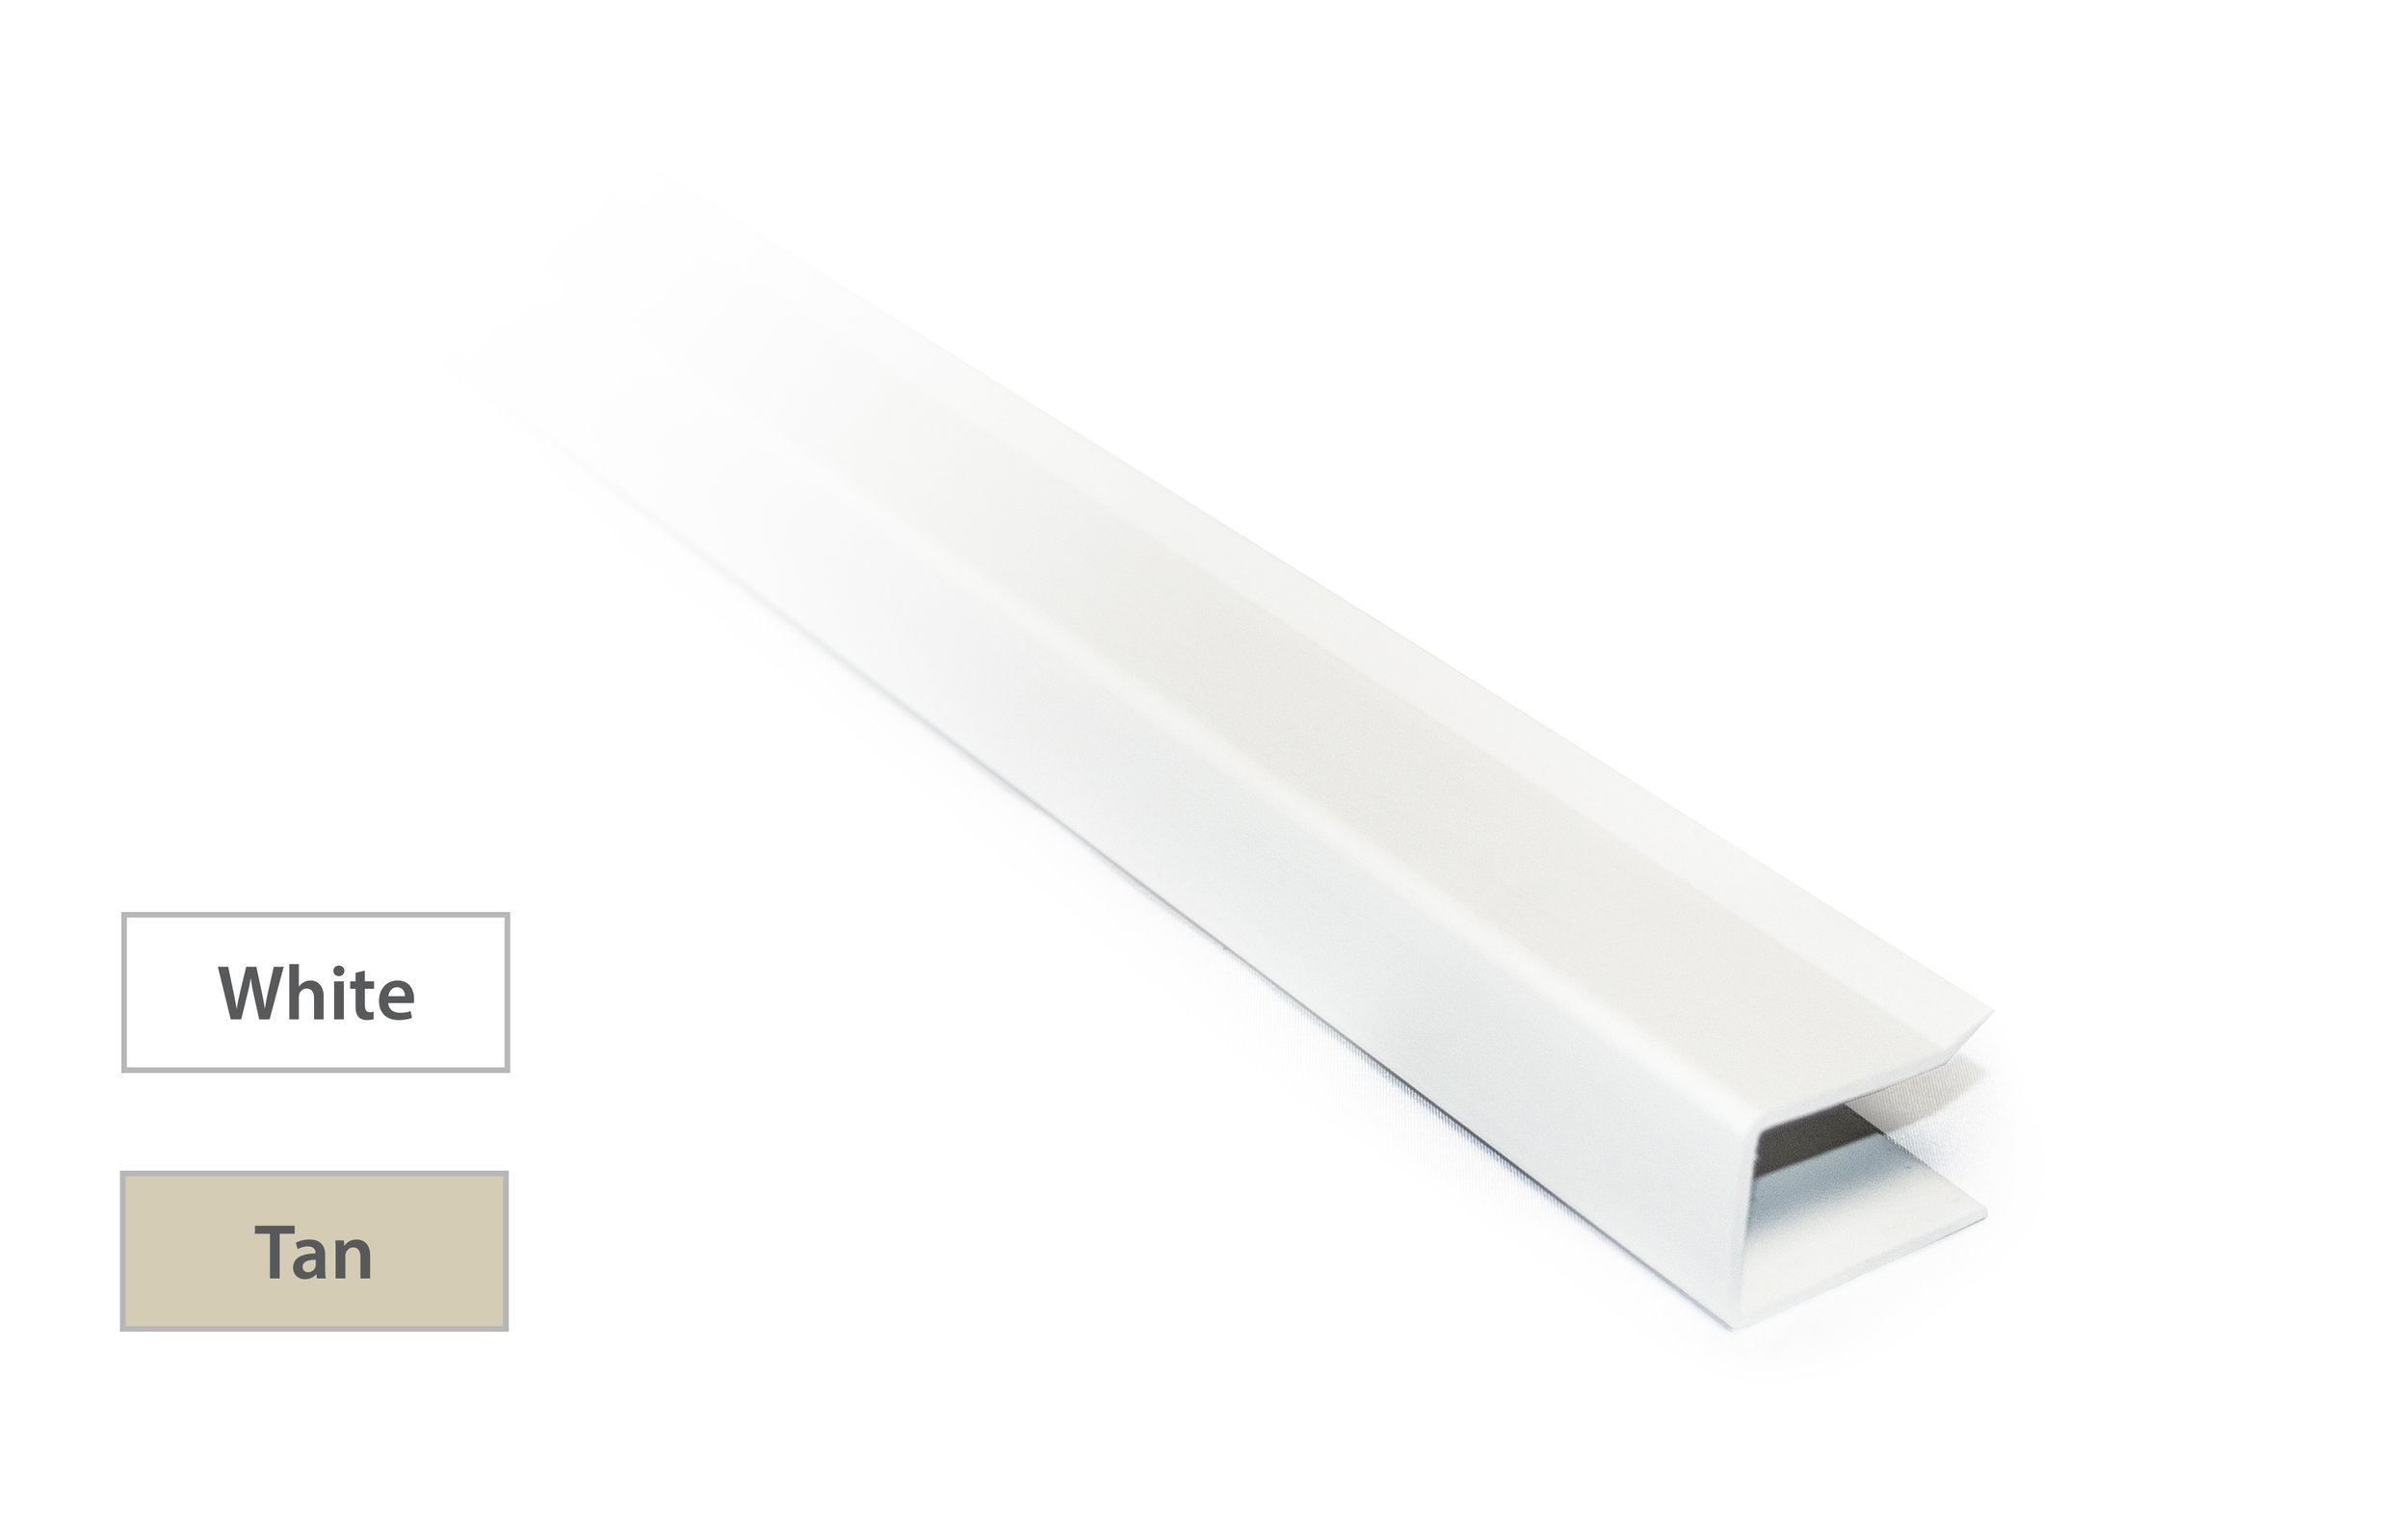 C-Channel - Made of vinyl materialProvides a clean finished lookAvailable in White or Tan